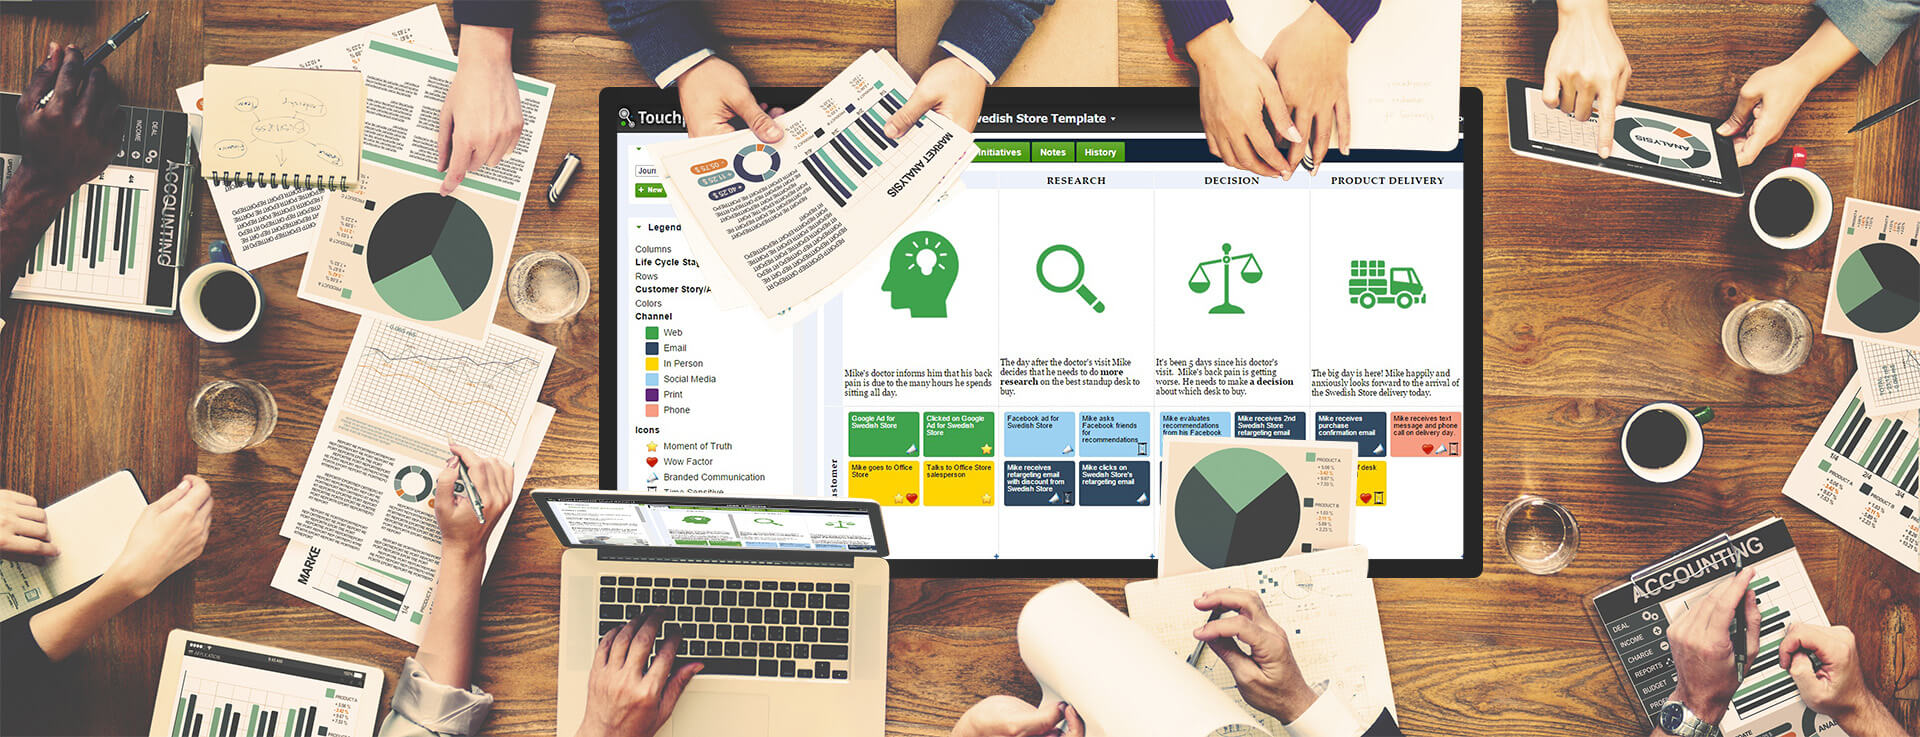 Are You Using The Best Practices To Visualize Your Dashboard & Reports For Clients?